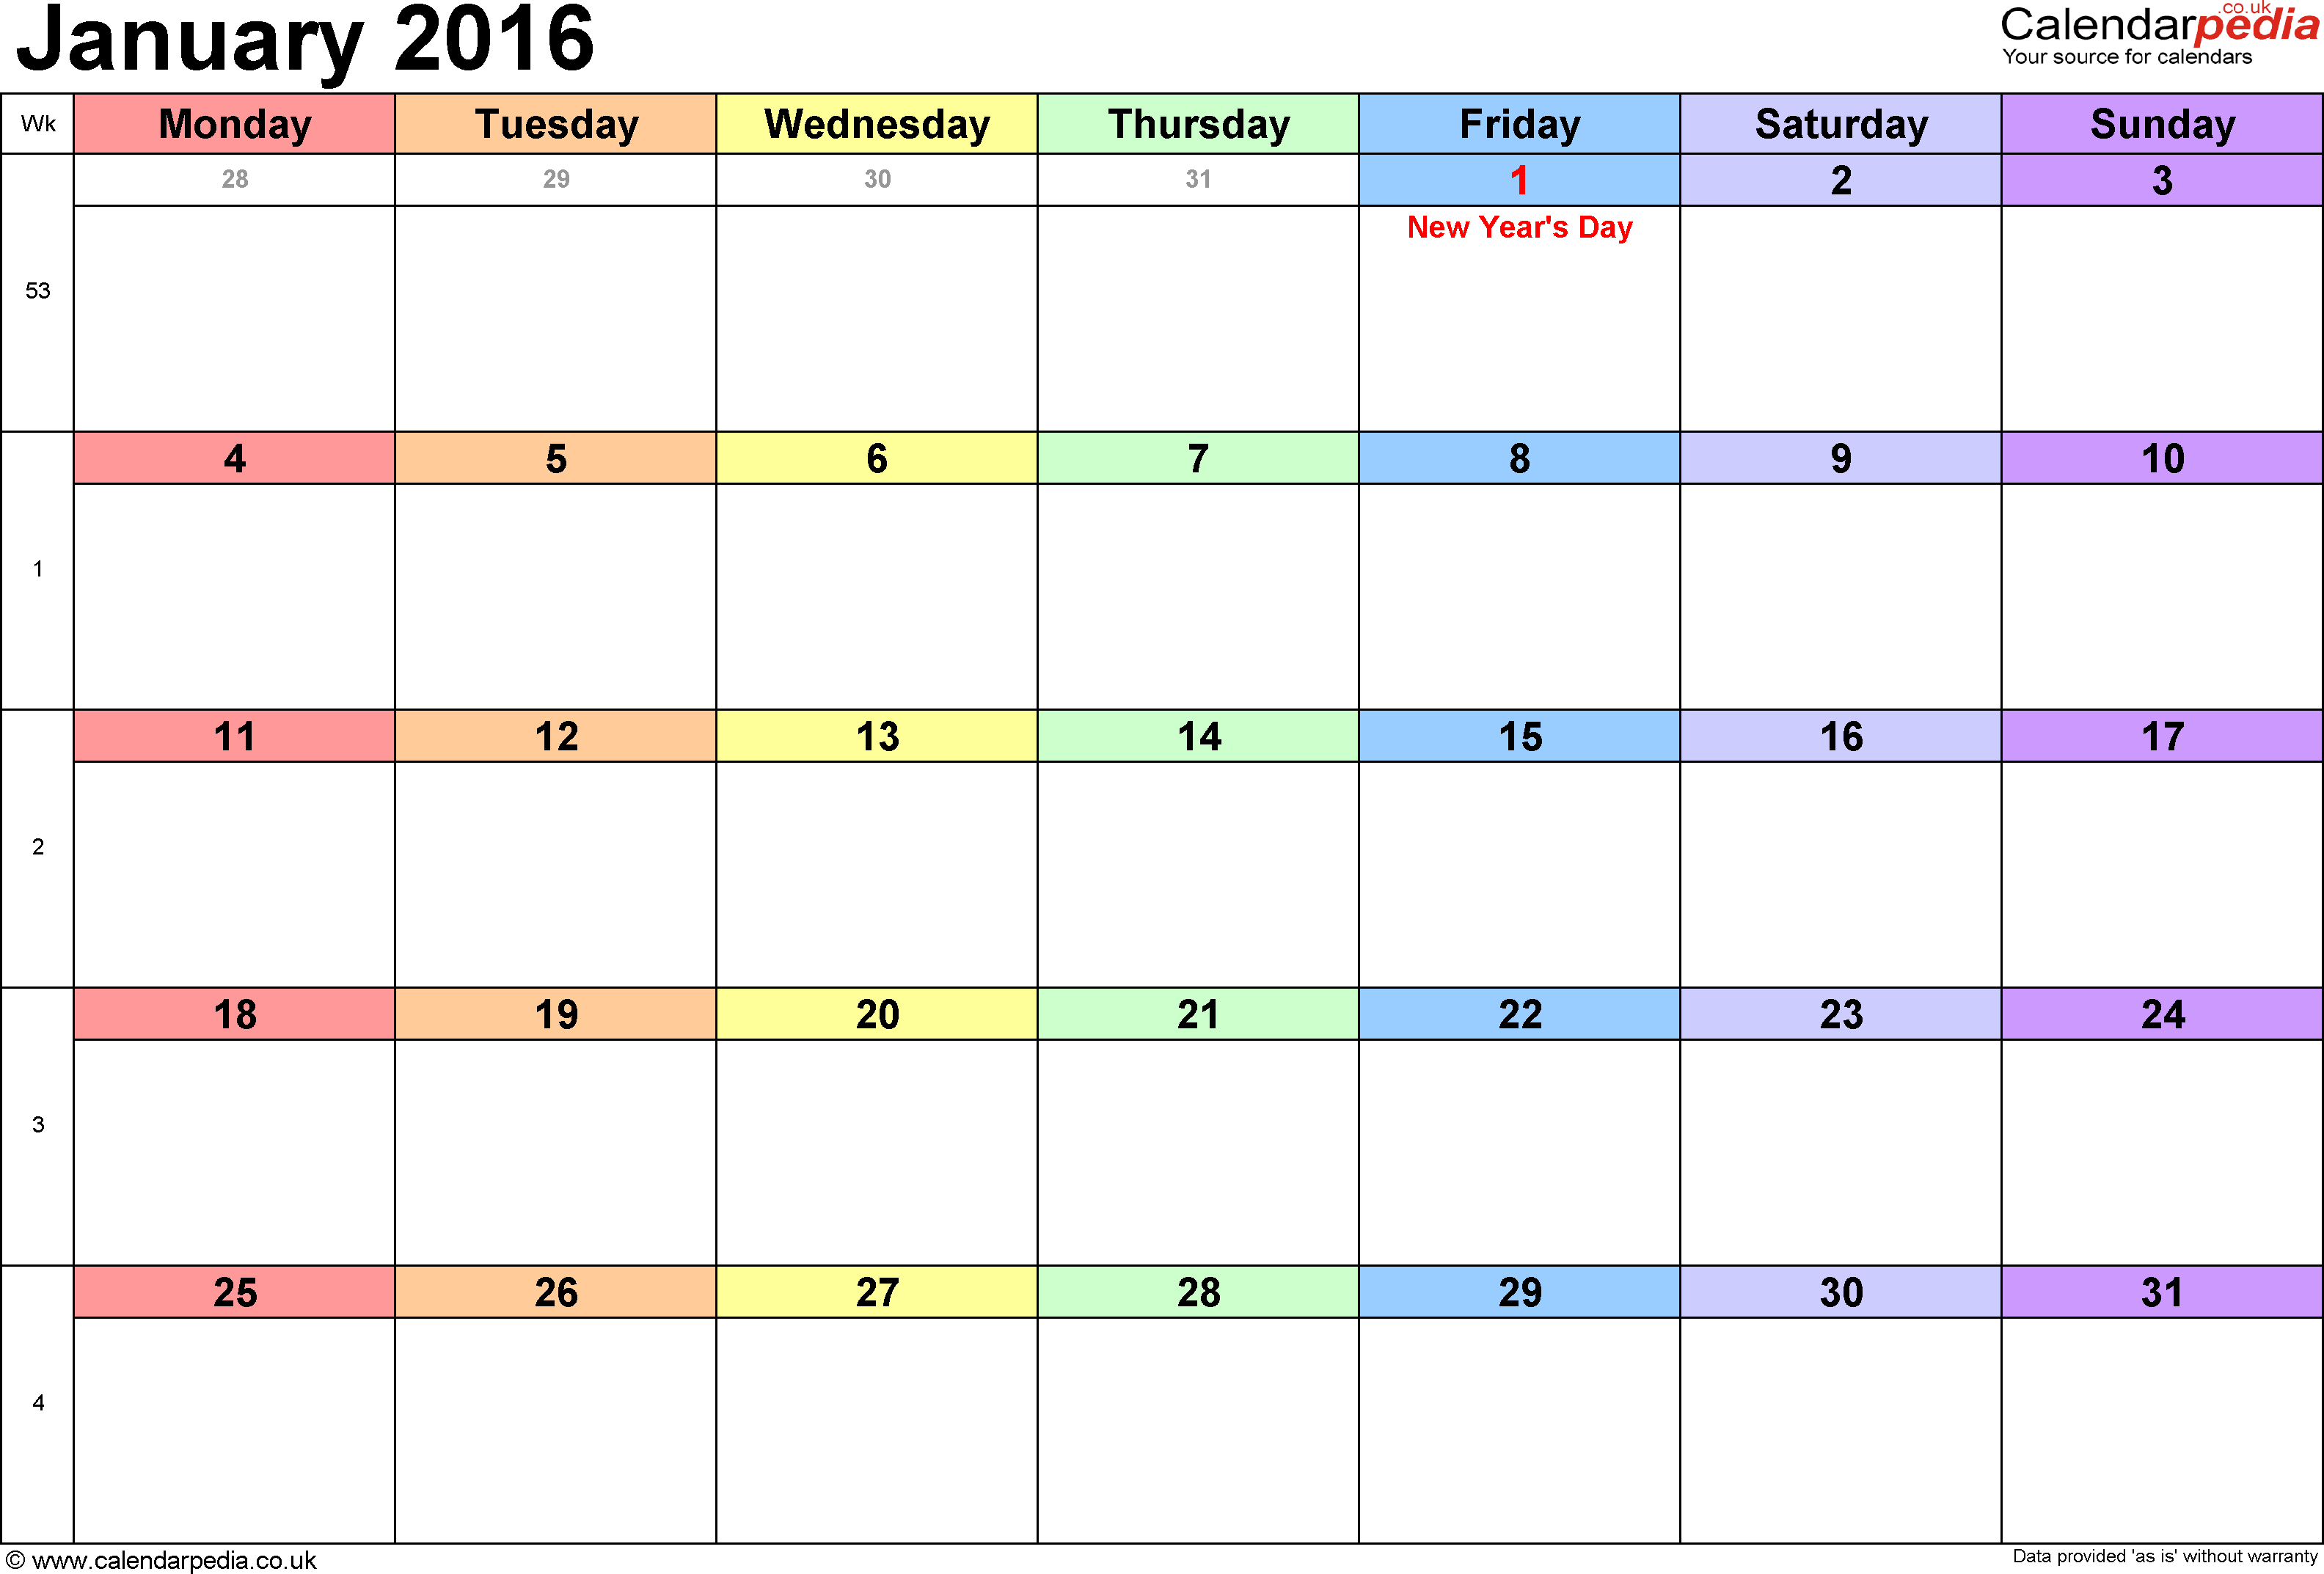 calendar with time schedule kays makehauk co